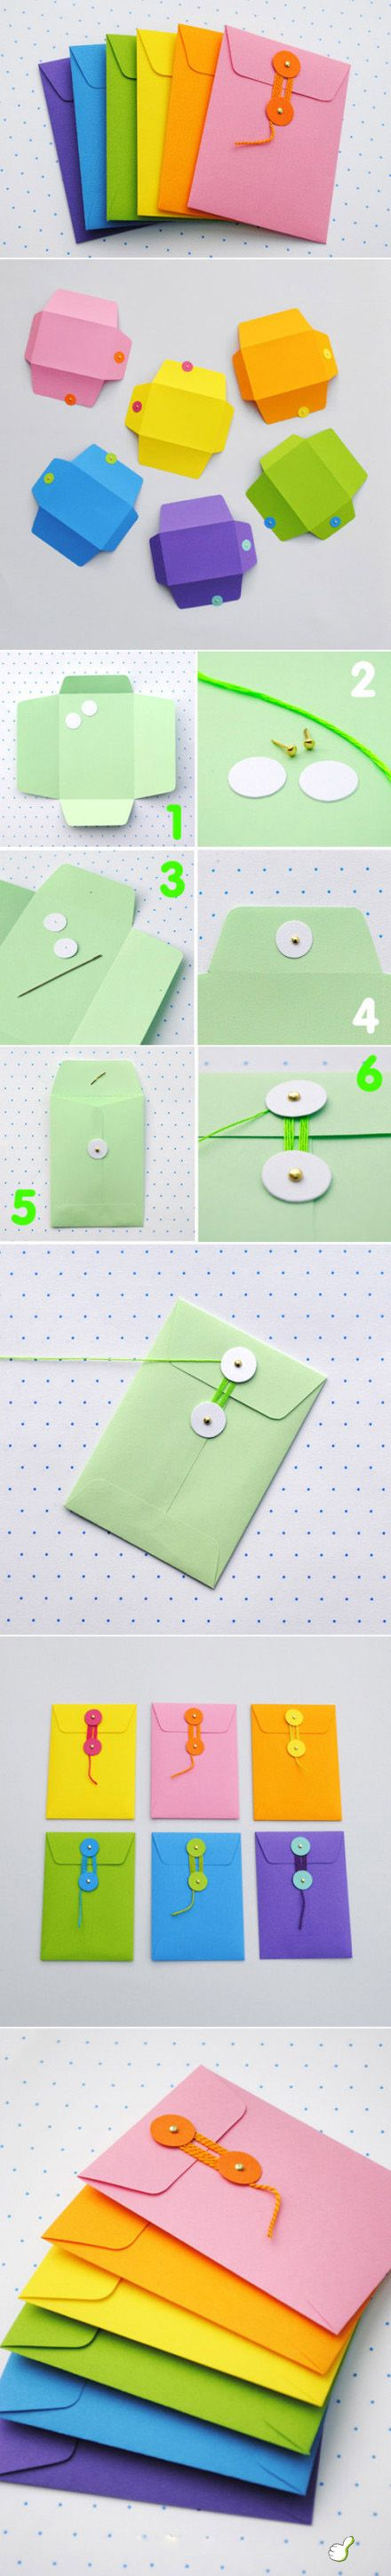 DIY Envelopes                                                                                                                                                      Más                                                                                                                                                     Más